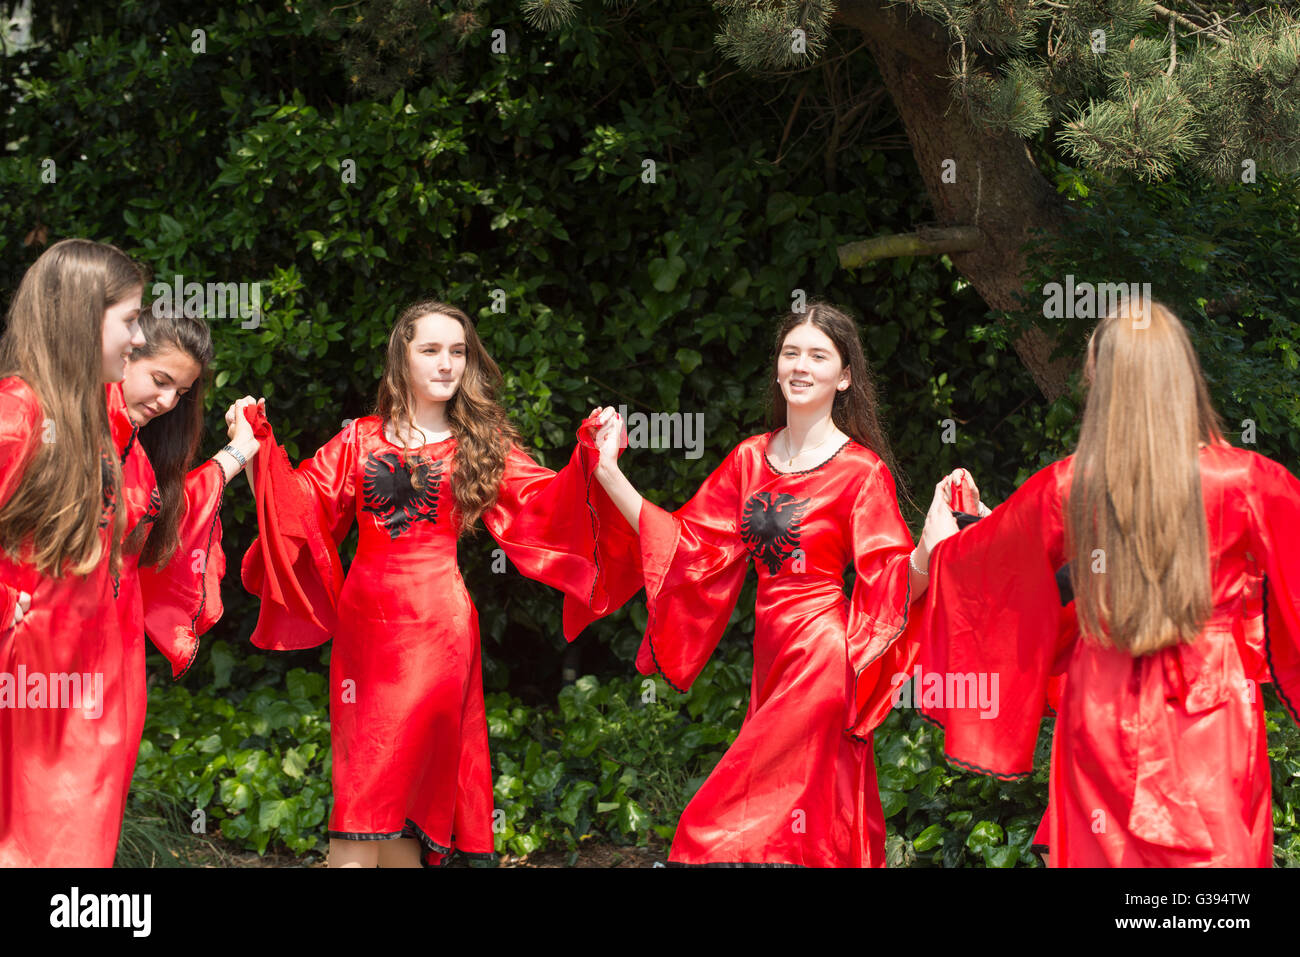 London Golders Green Childs Hill Park Albanian Community Childrens' Day Festival young teenagers red dresses - Stock Image